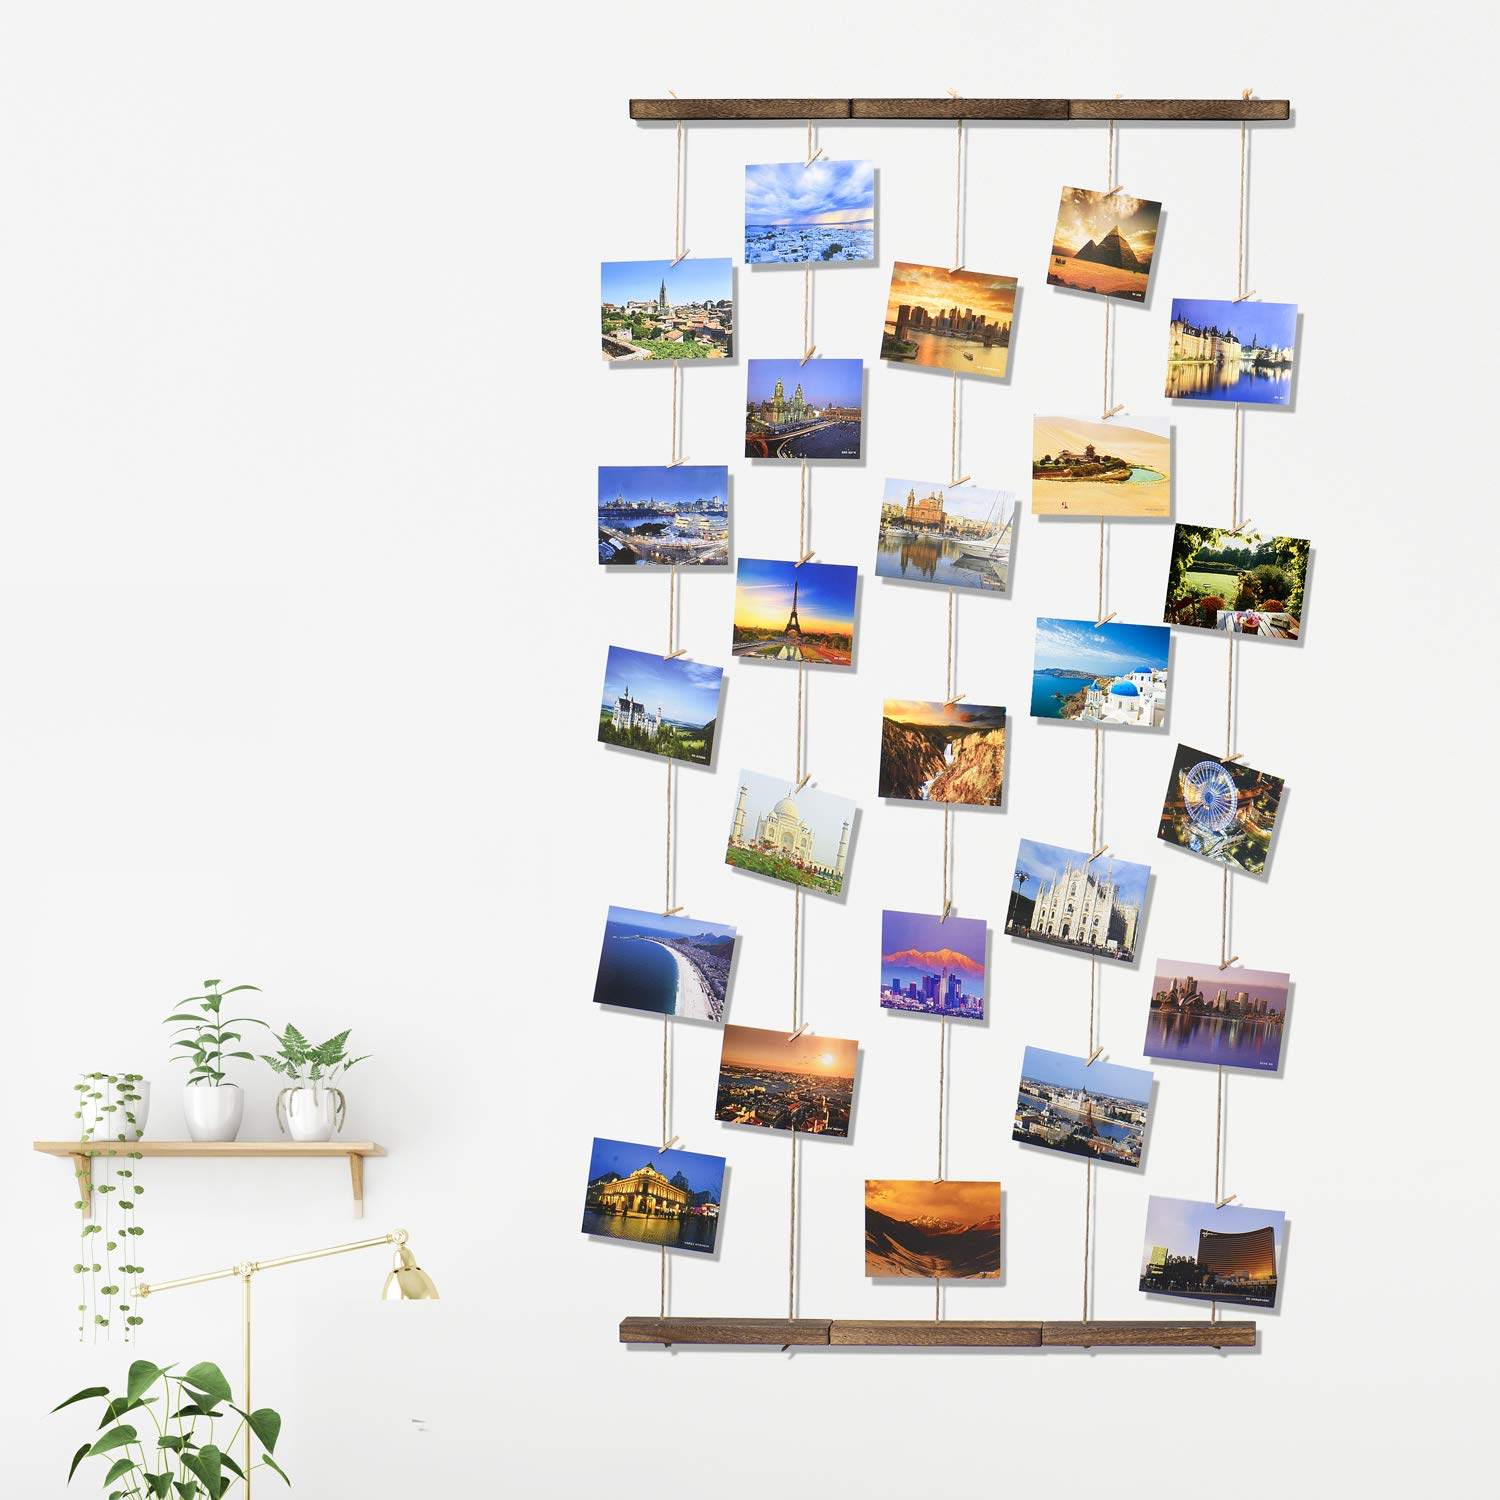 TWING Hanging Photo Display Picture Frames Collage with 30 Clips 26×29 inch - Collage Artworks Prints Multi Pictures Organizer & Hanging Display Frame for Wall Decor Hanging Photos by TWING